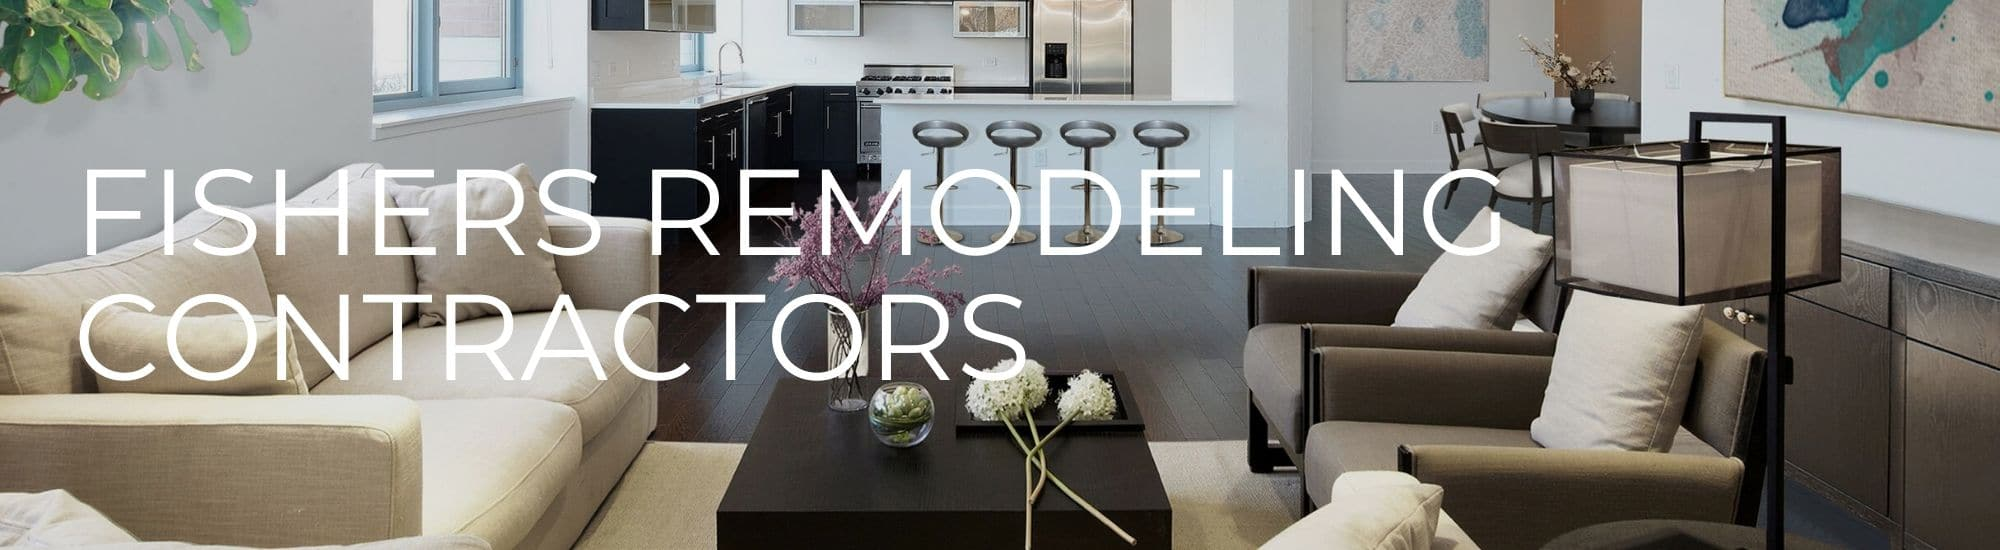 fishers remodeling contractors